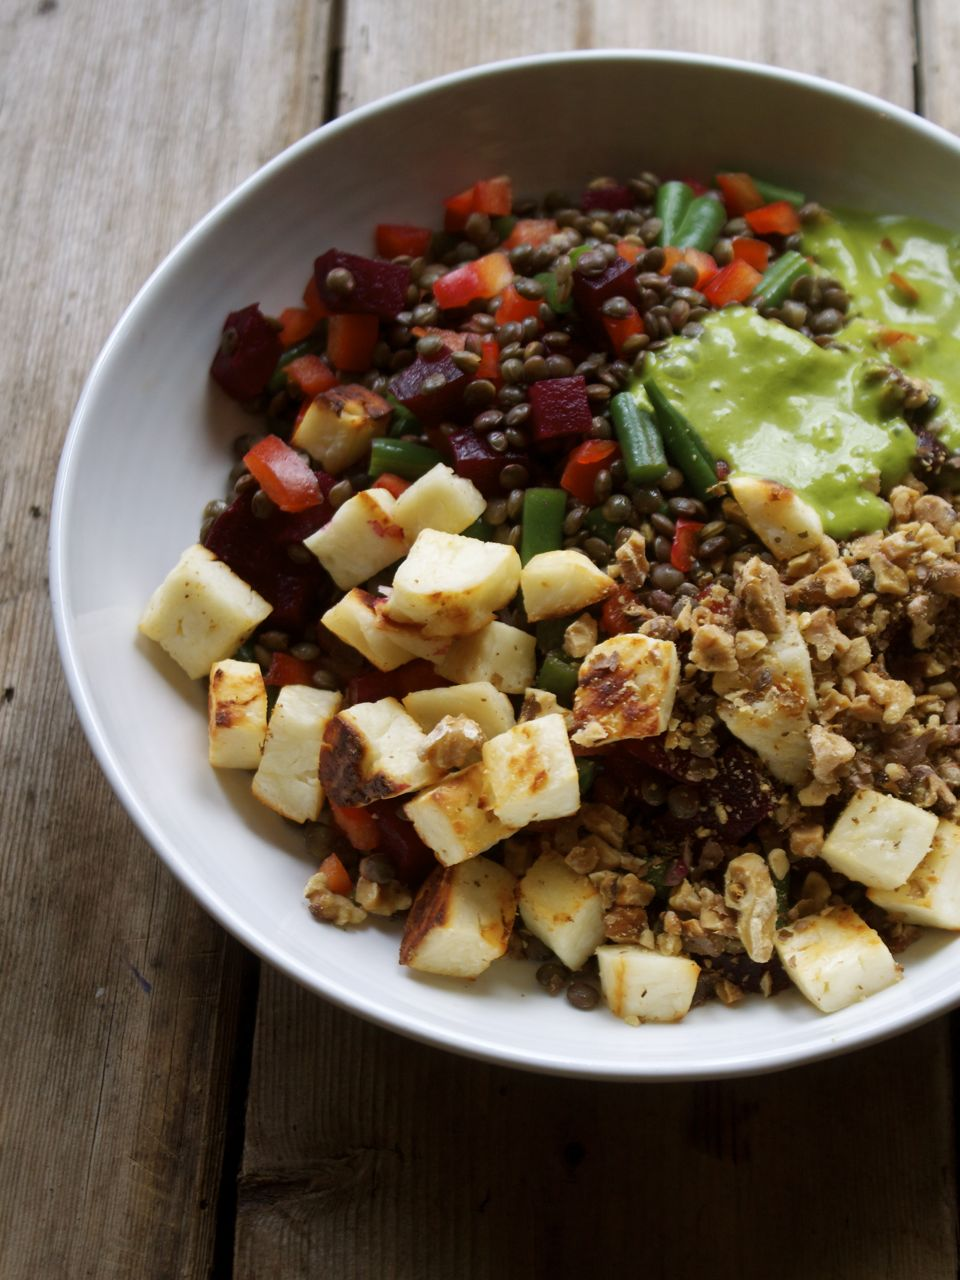 FRENCH LENTIL SALAD WITH HALOUMI CROUTONS